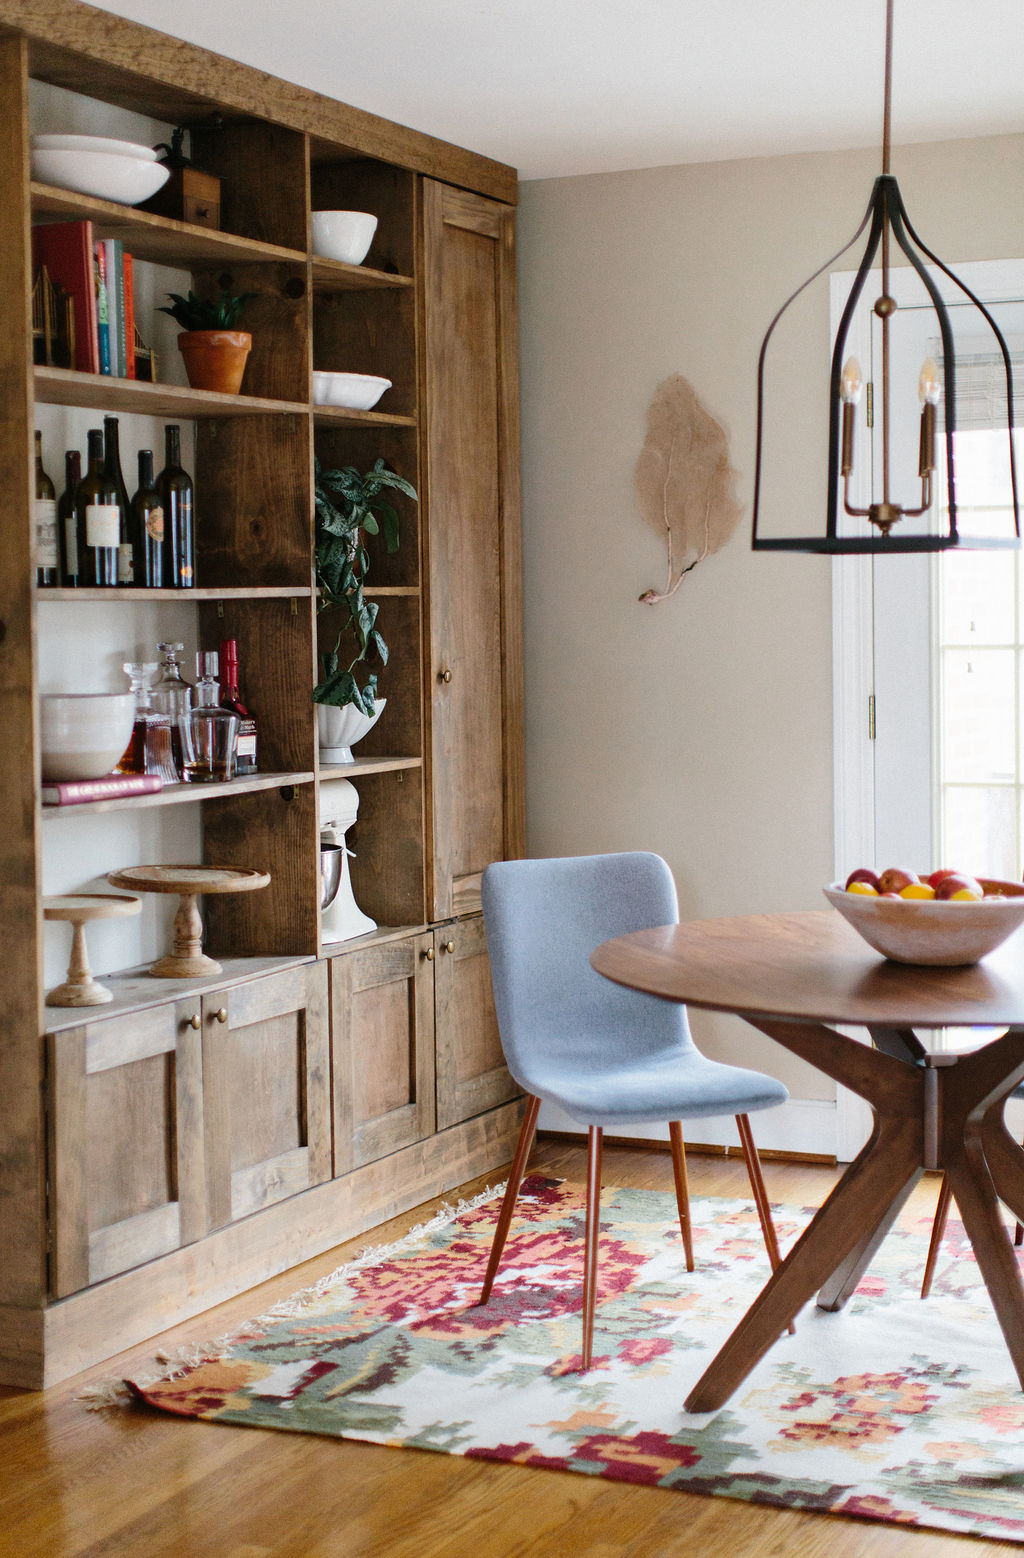 Journey-Jacobs-Design-Studio-Louisville-Residential-Commercial-Hospitality-Interior-Design-Traditional-Modern-